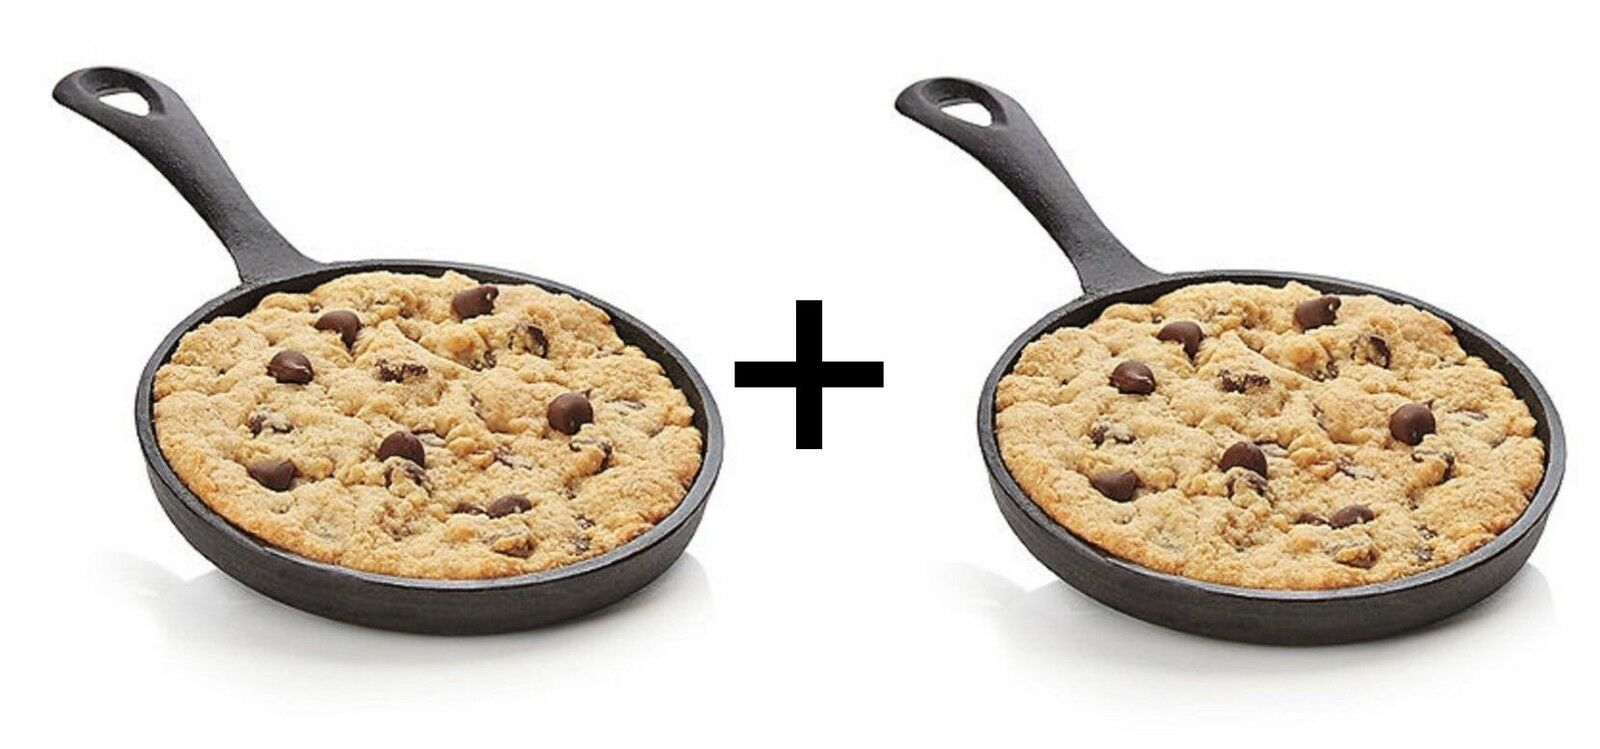 Buy 1 take 1 Mrs Fields cast iron skillet chocolate chip cookie mix paypal